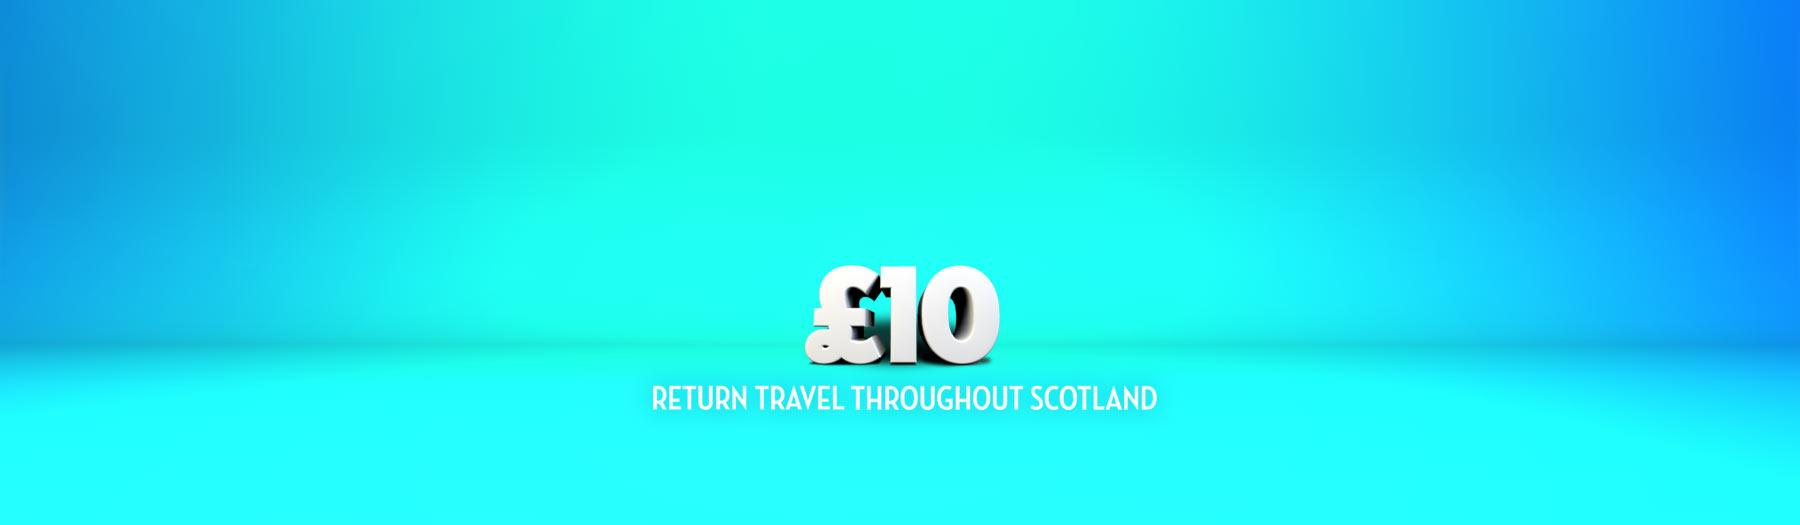 £10 return travel throughout Scotland